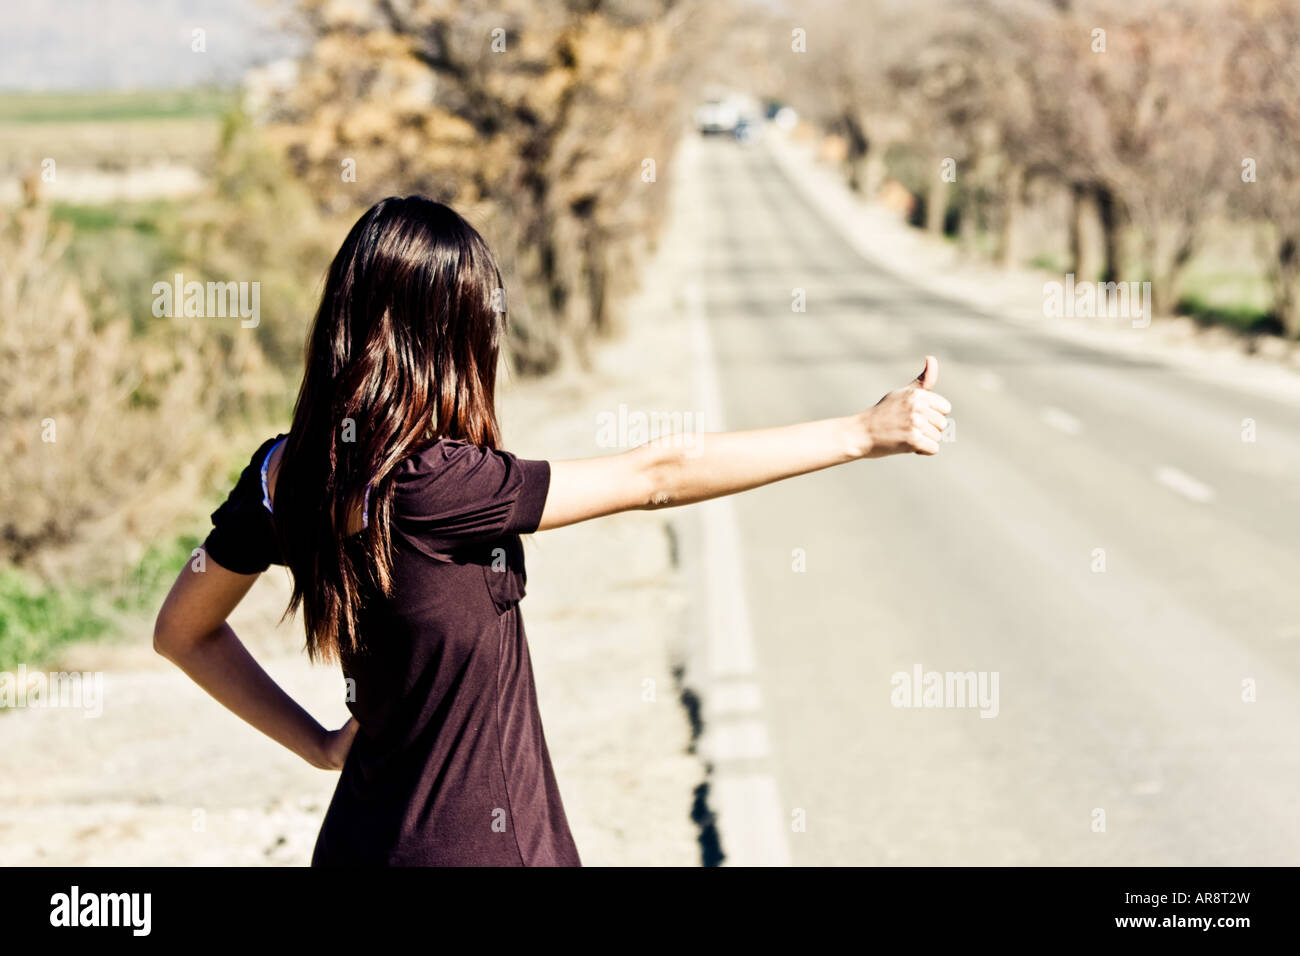 Hitchhikers By Side Of Road >> Hitchhiker Woman Waiting At One Side Of The Road Stock Photo